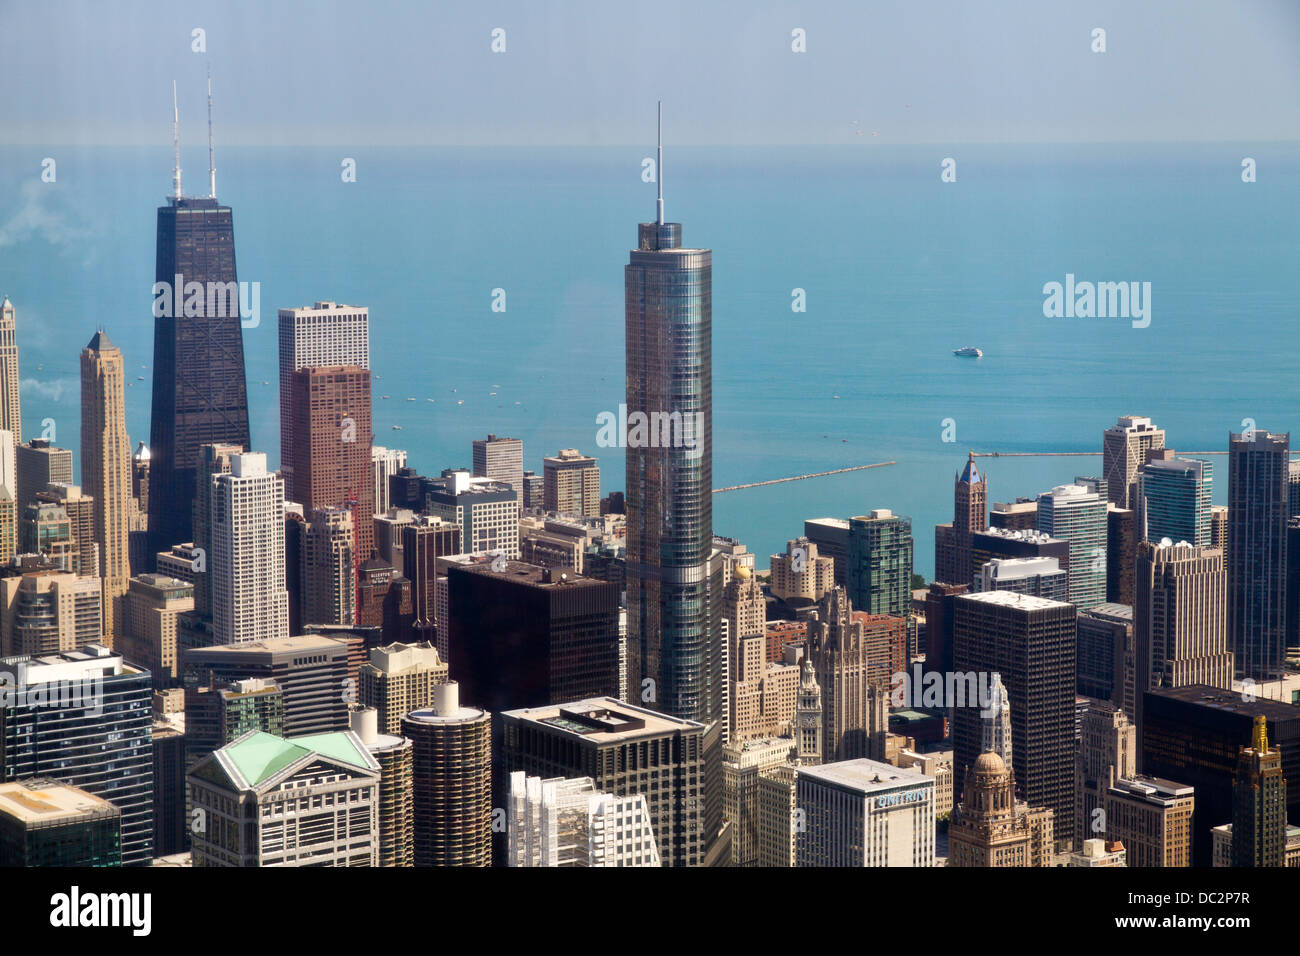 Aerial view of Chicago IL, Trump tower and the John Hancock building, as seen from the Willis tower observation - Stock Image